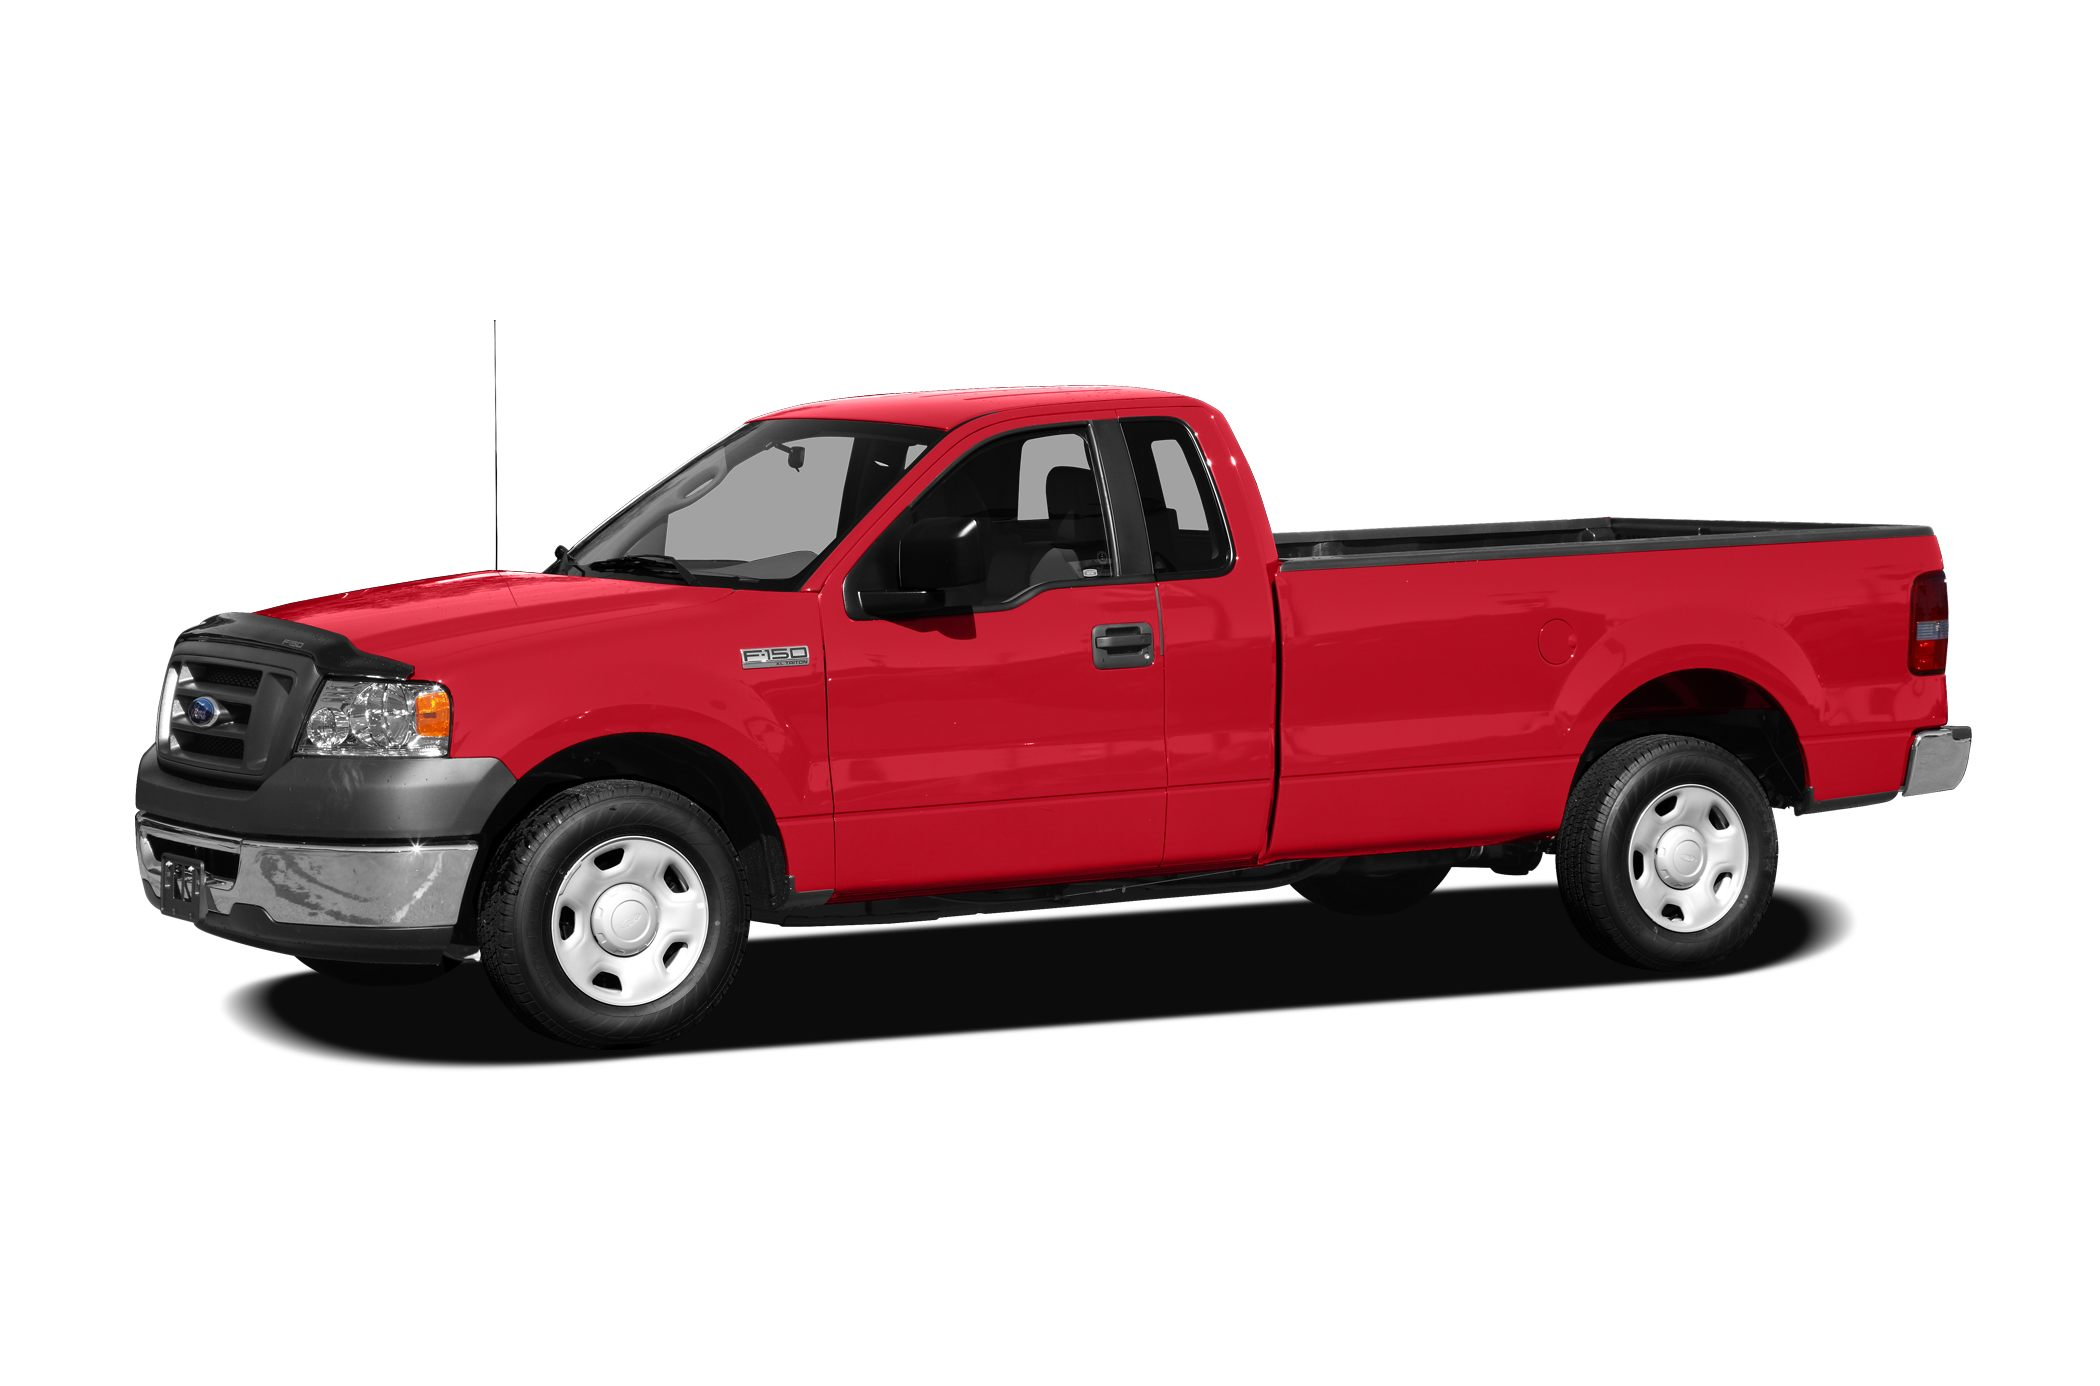 2008 Ford F150 STX Regular Cab Pickup for sale in Henderson for $12,995 with 68,436 miles